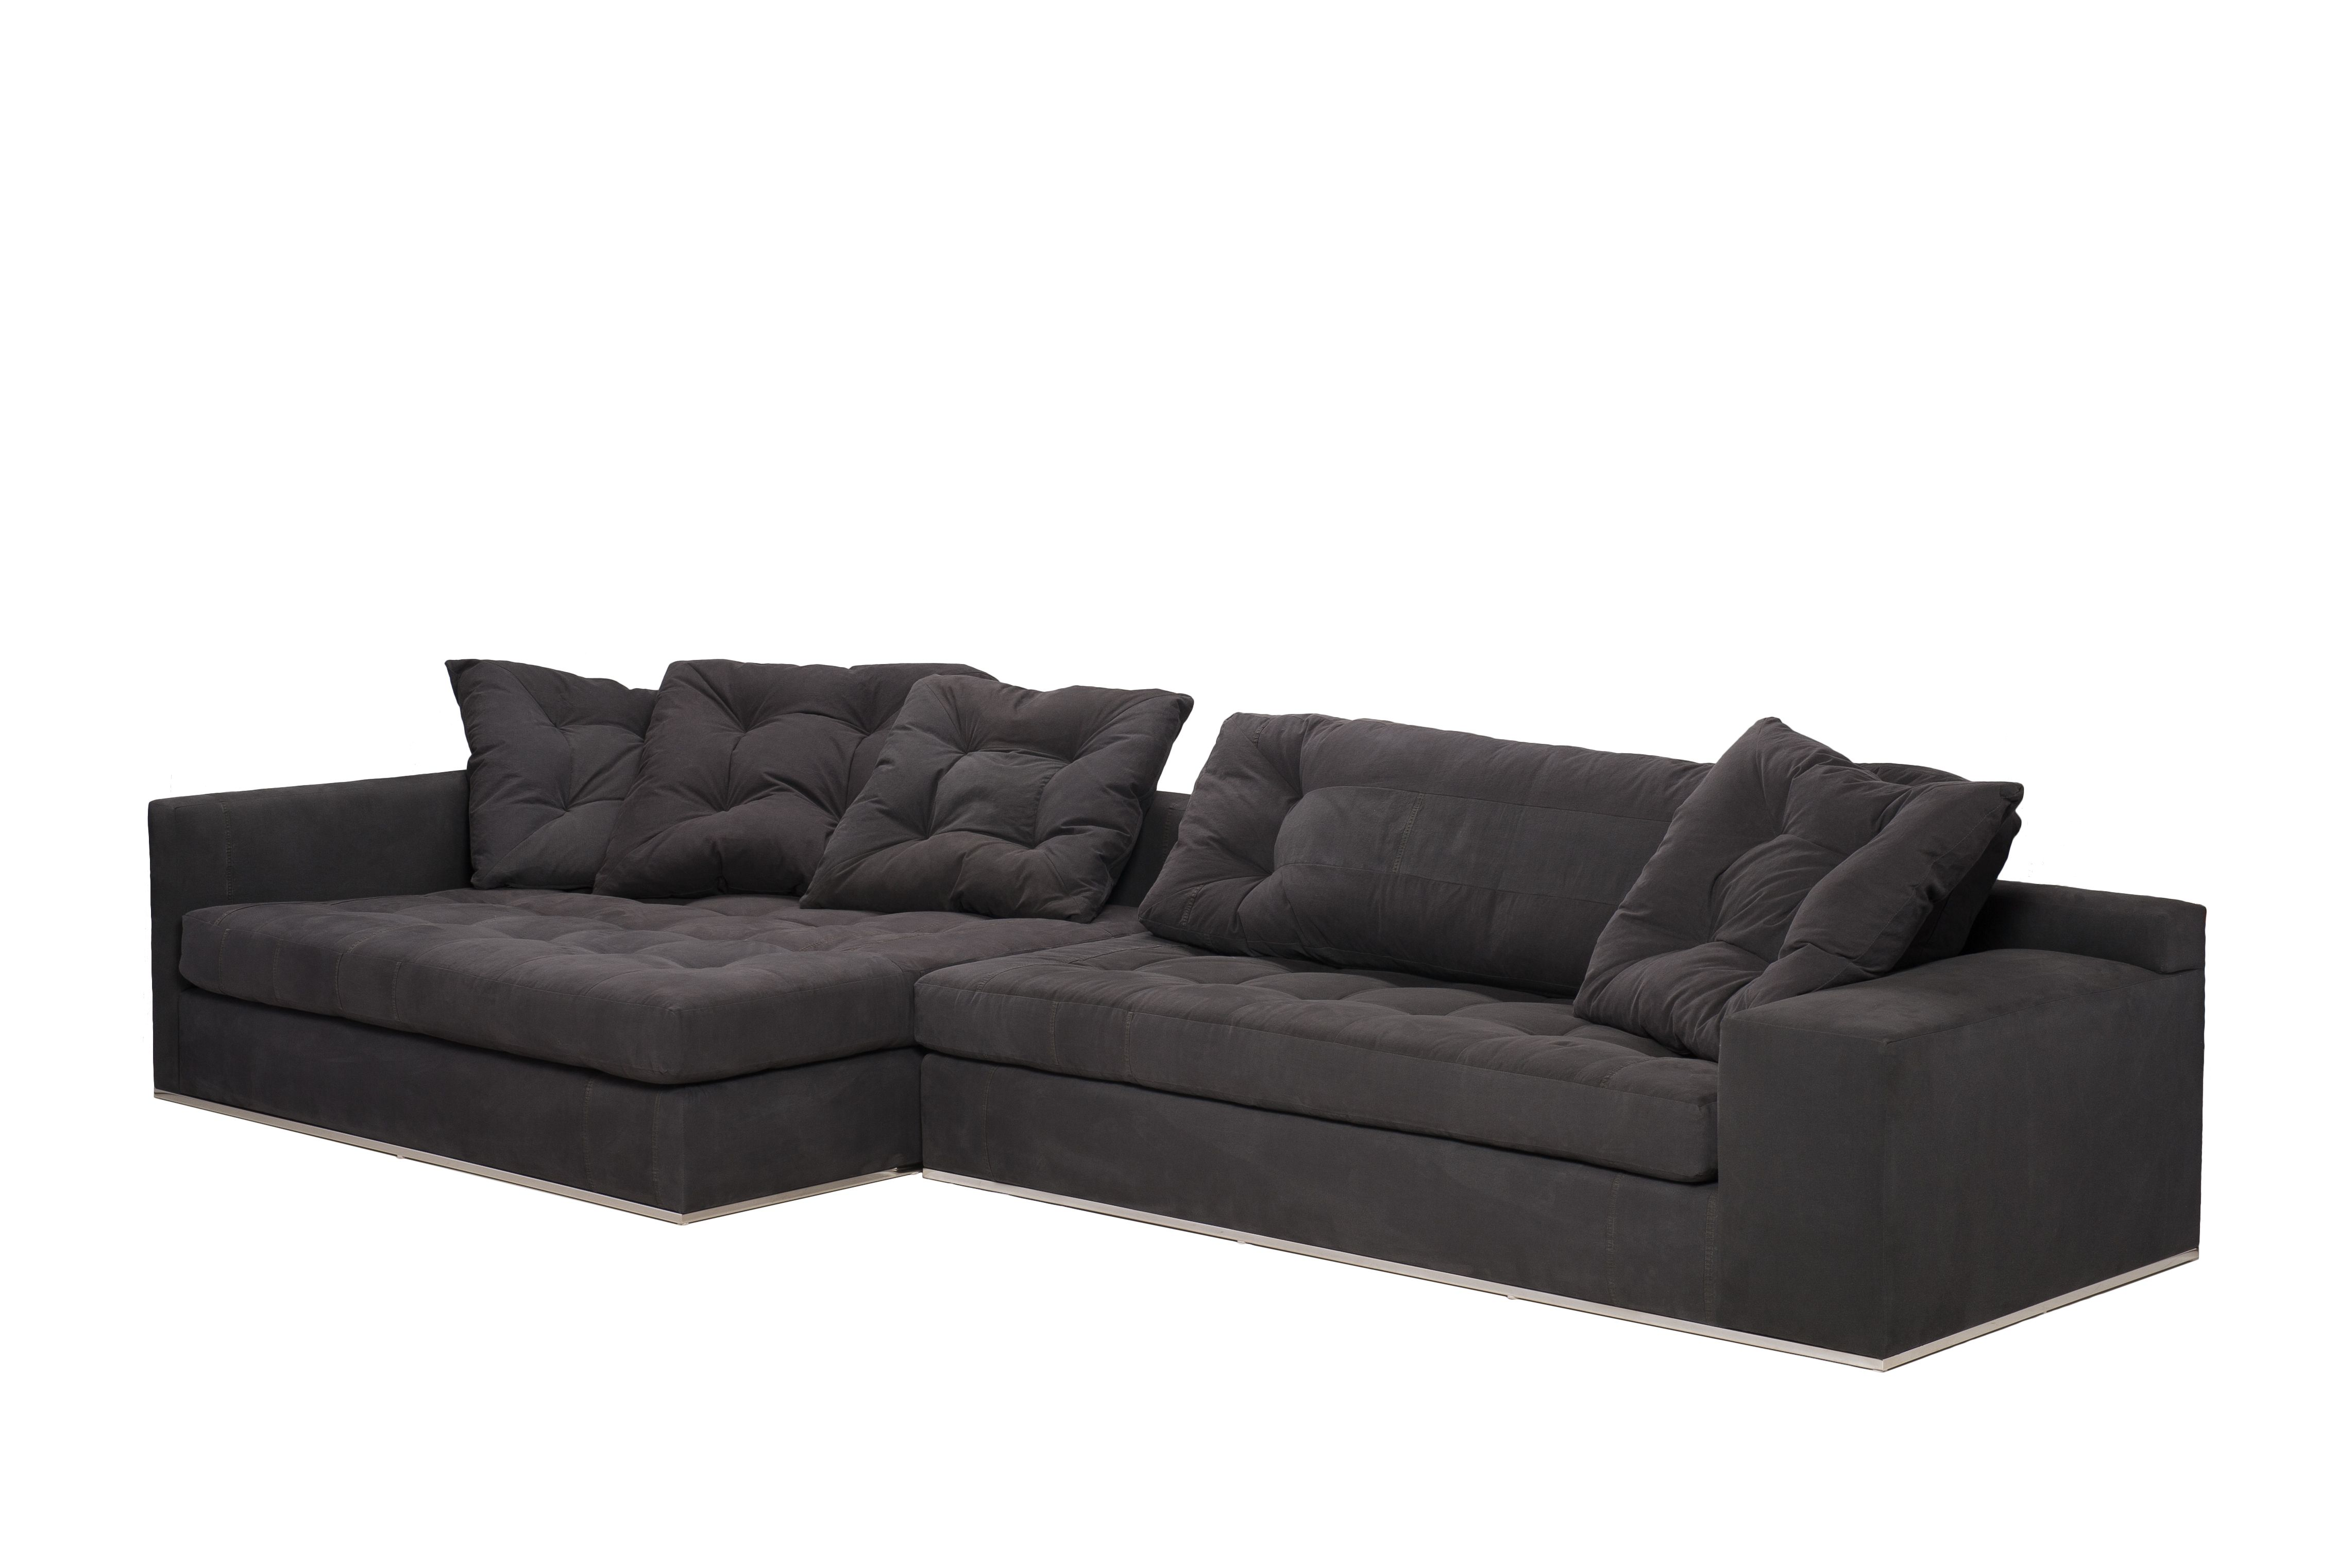 Magnificent Studio Sectional Sofa Made From Reclaimed Shelter Half Army Pdpeps Interior Chair Design Pdpepsorg